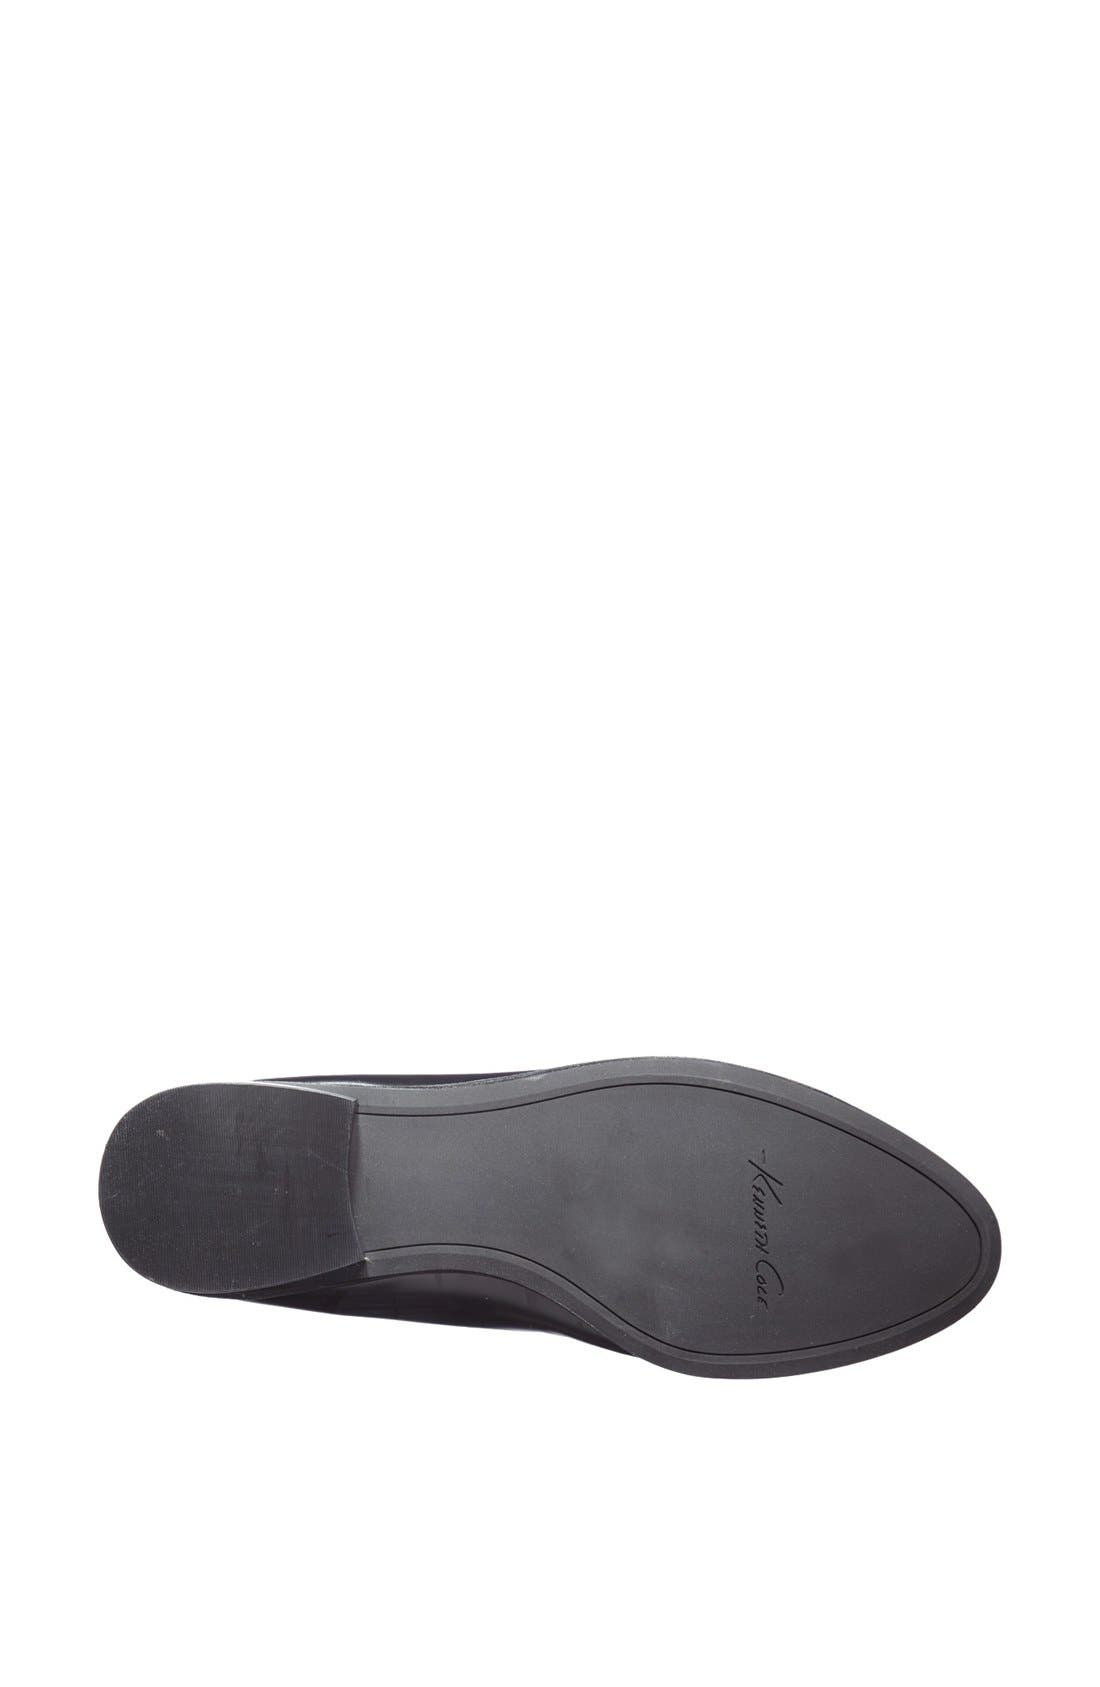 Alternate Image 4  - Kenneth Cole New York 'Hudson' Leather Flat